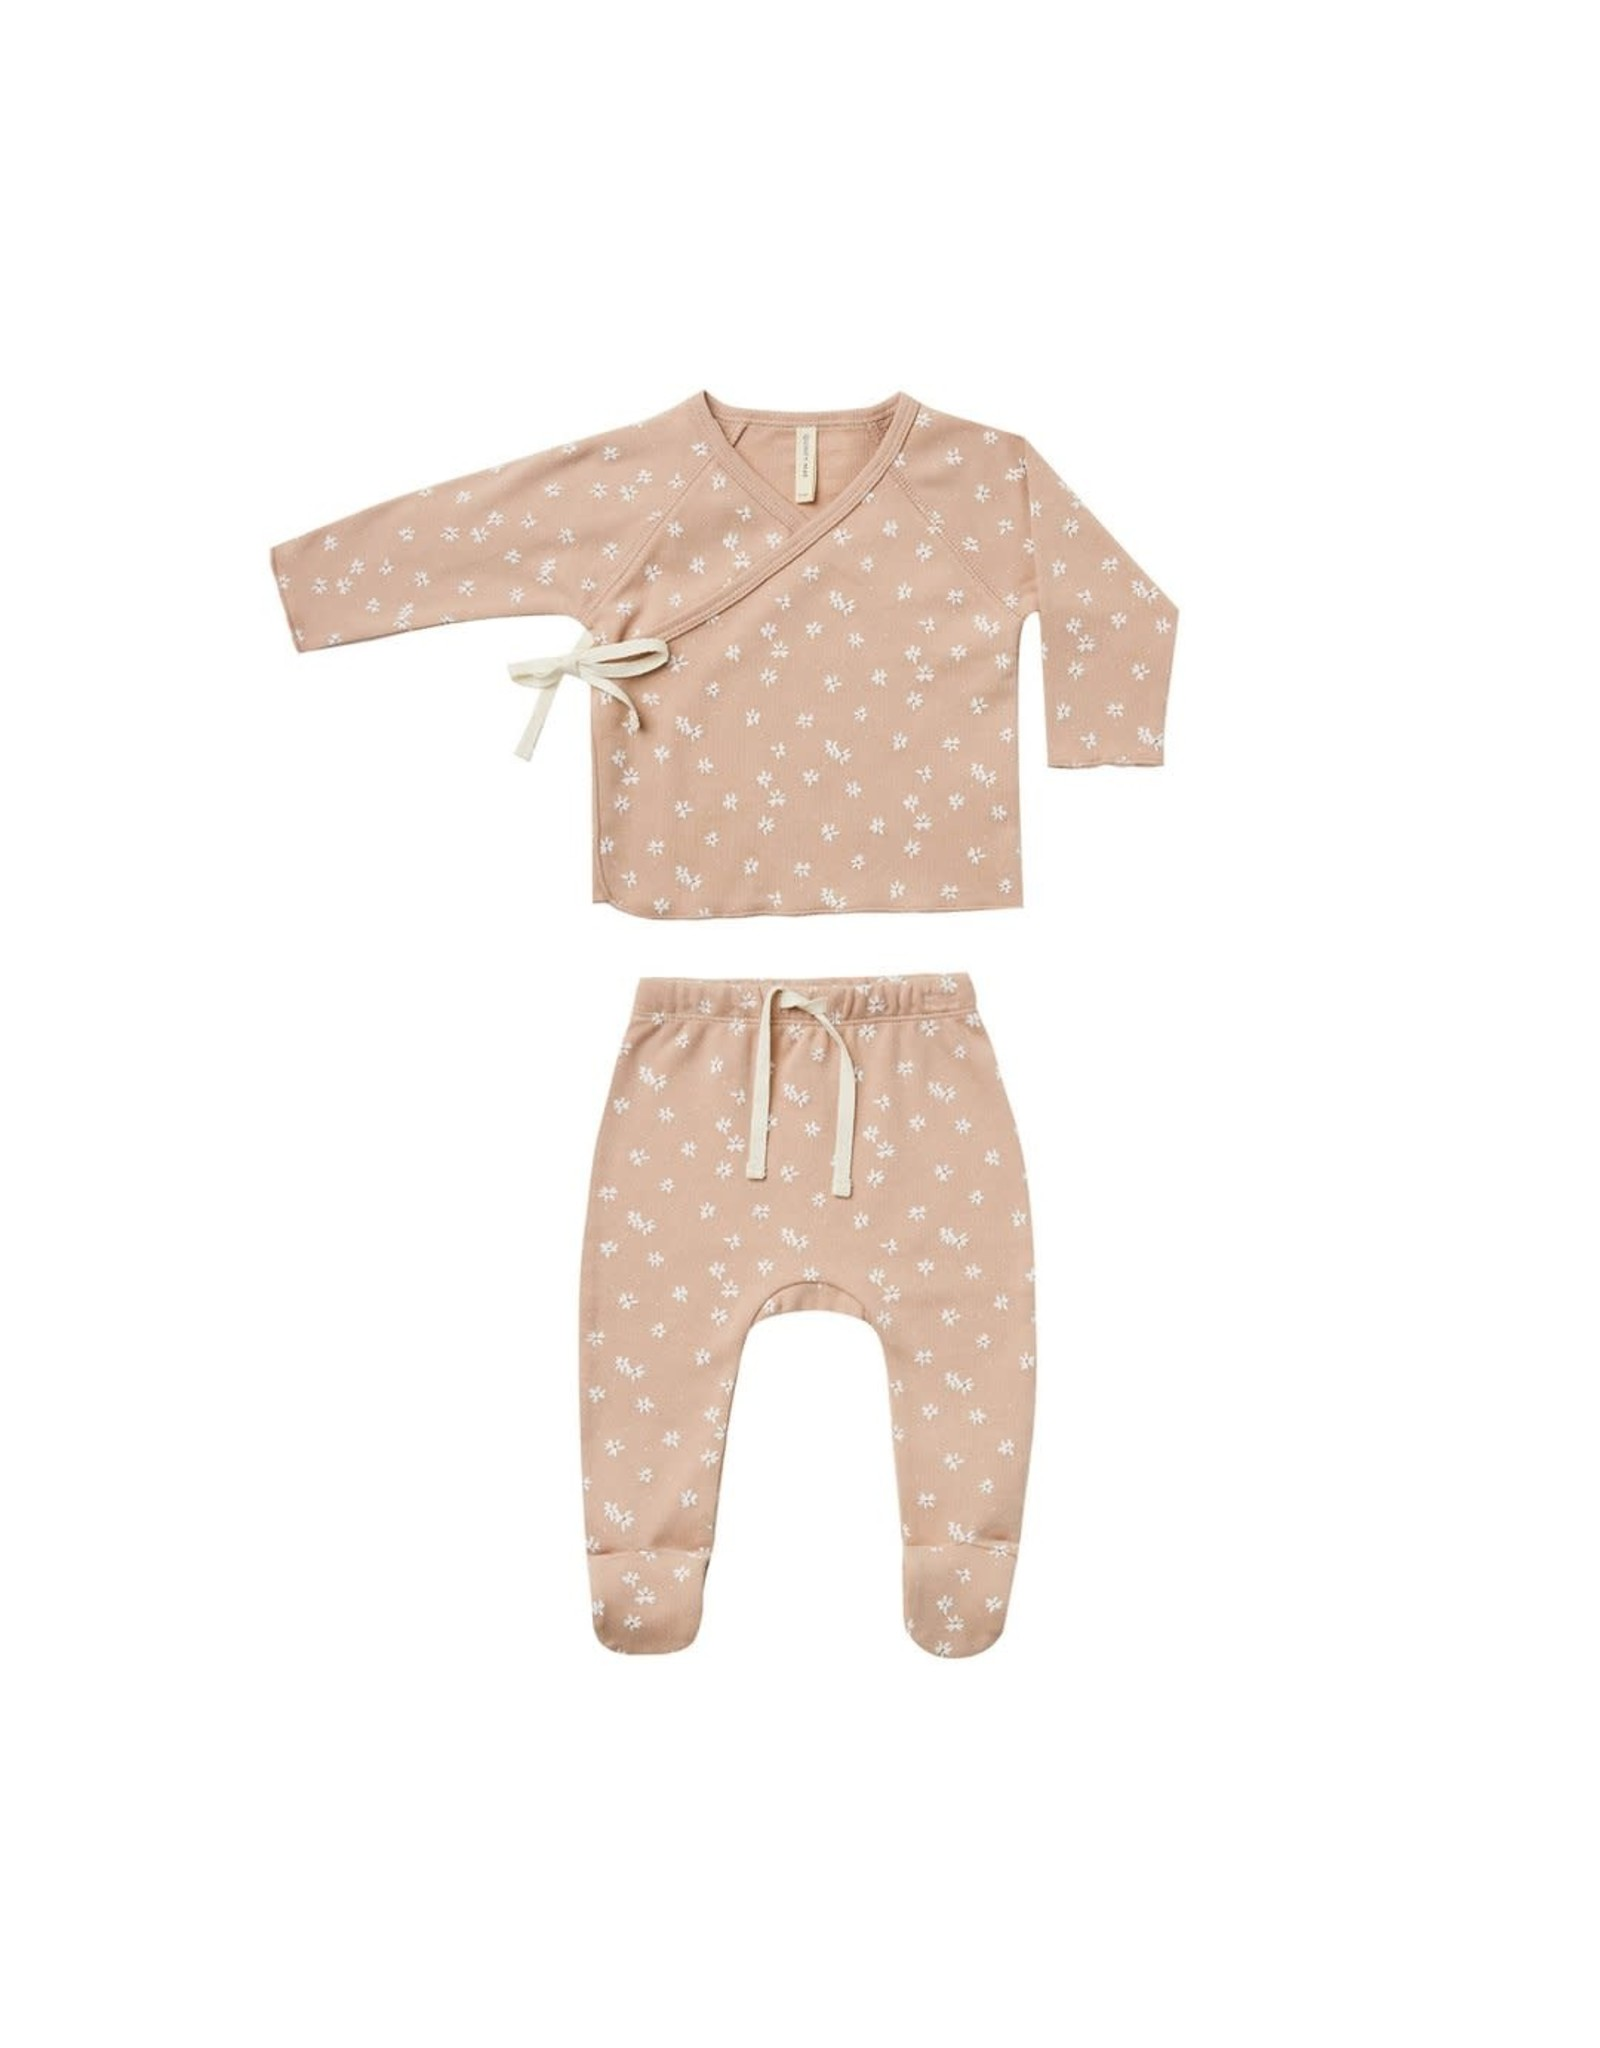 Quincy Mae Quincy Mae Kimono Top & Footed Pant Set Blossom